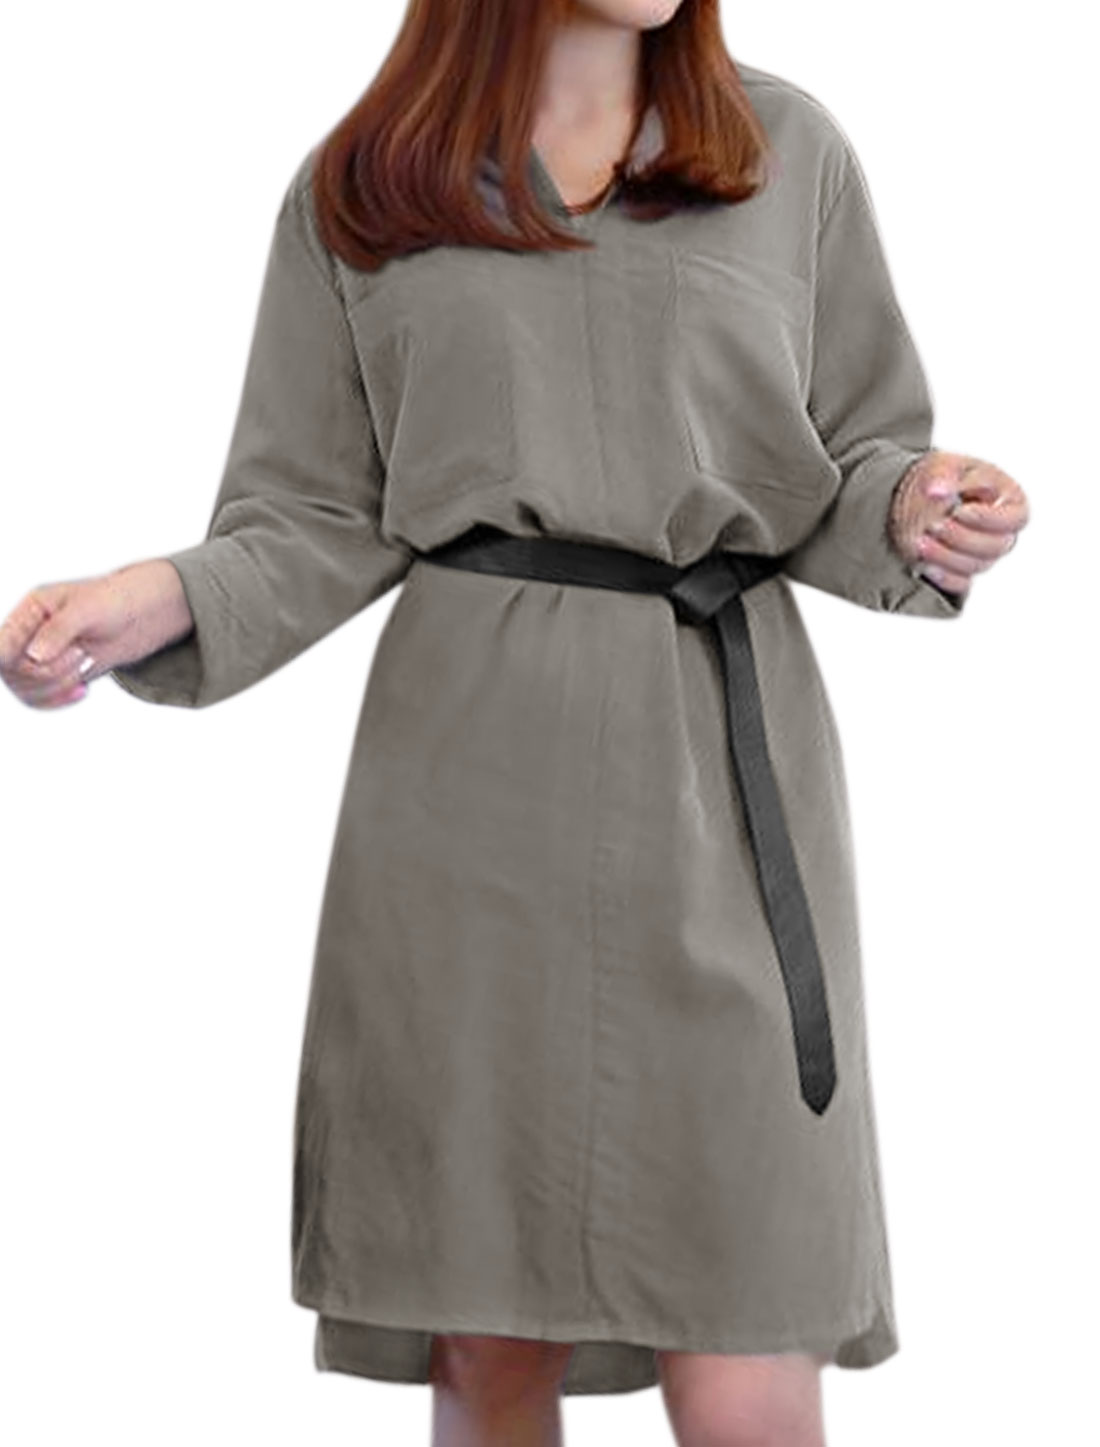 Women Split Sides High Low Hem Loose Tunic Dress w Belt Gray XS